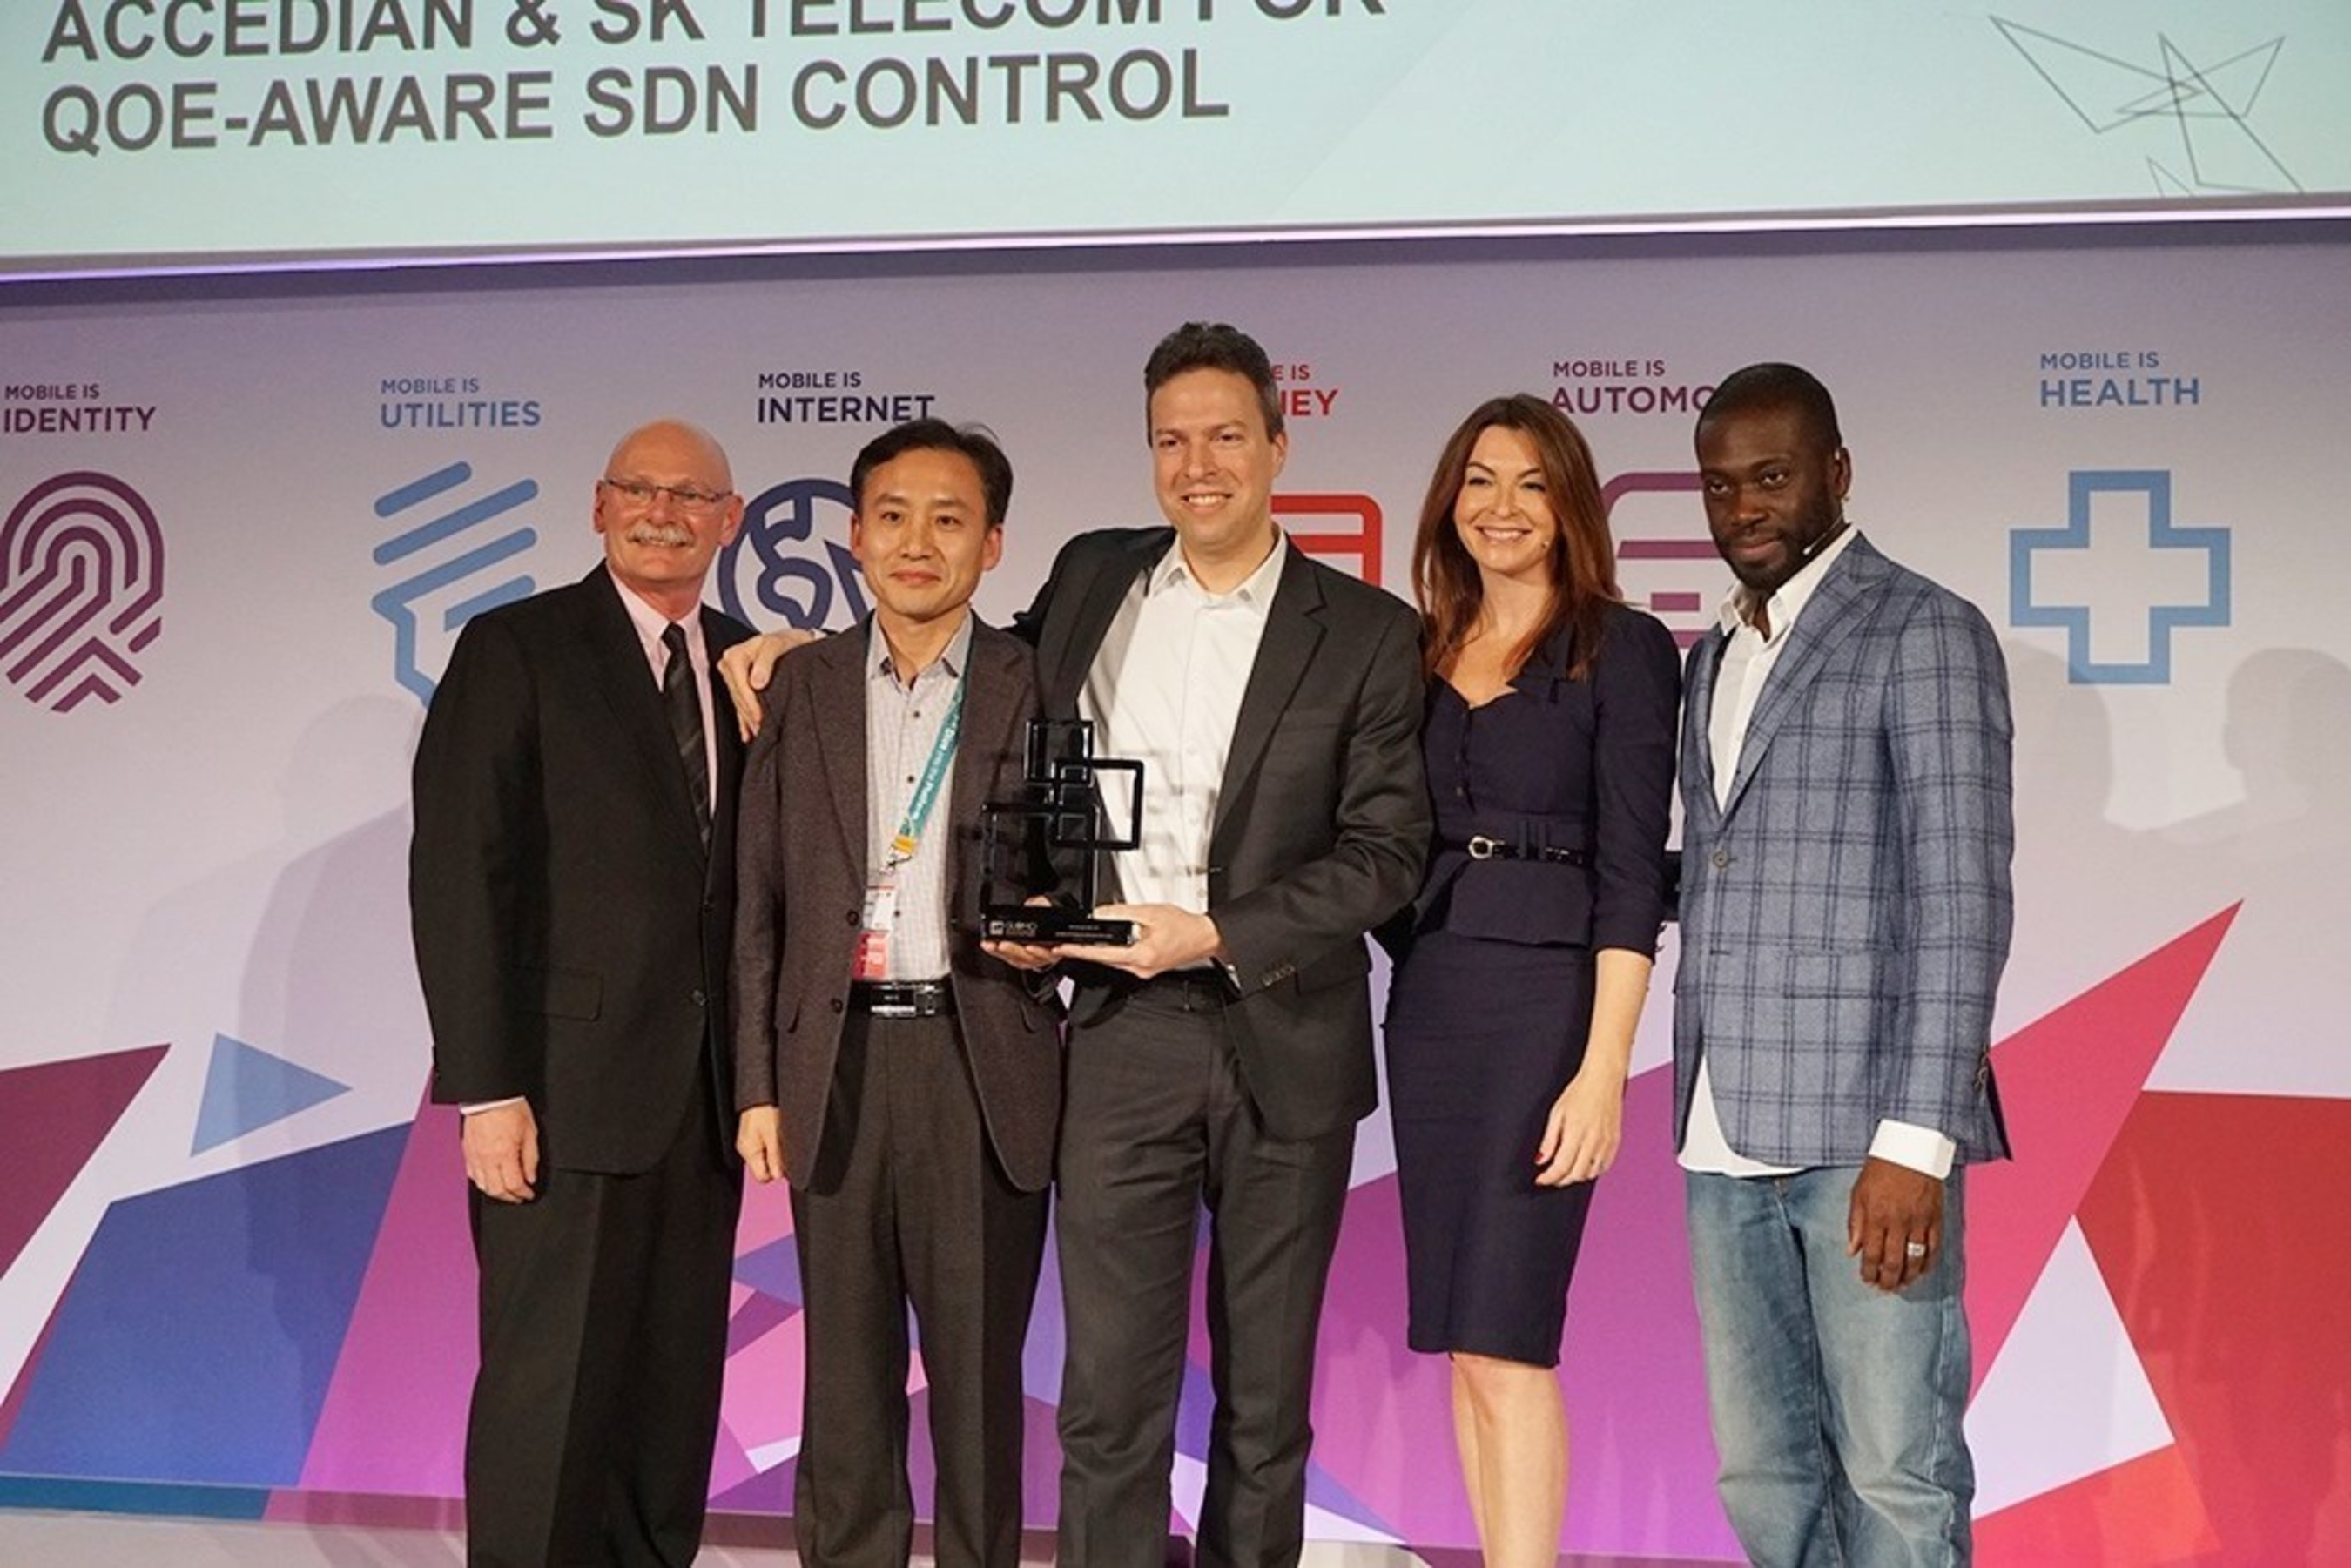 SK Telecom and Accedian win GSMA Global Mobile Awards 2016